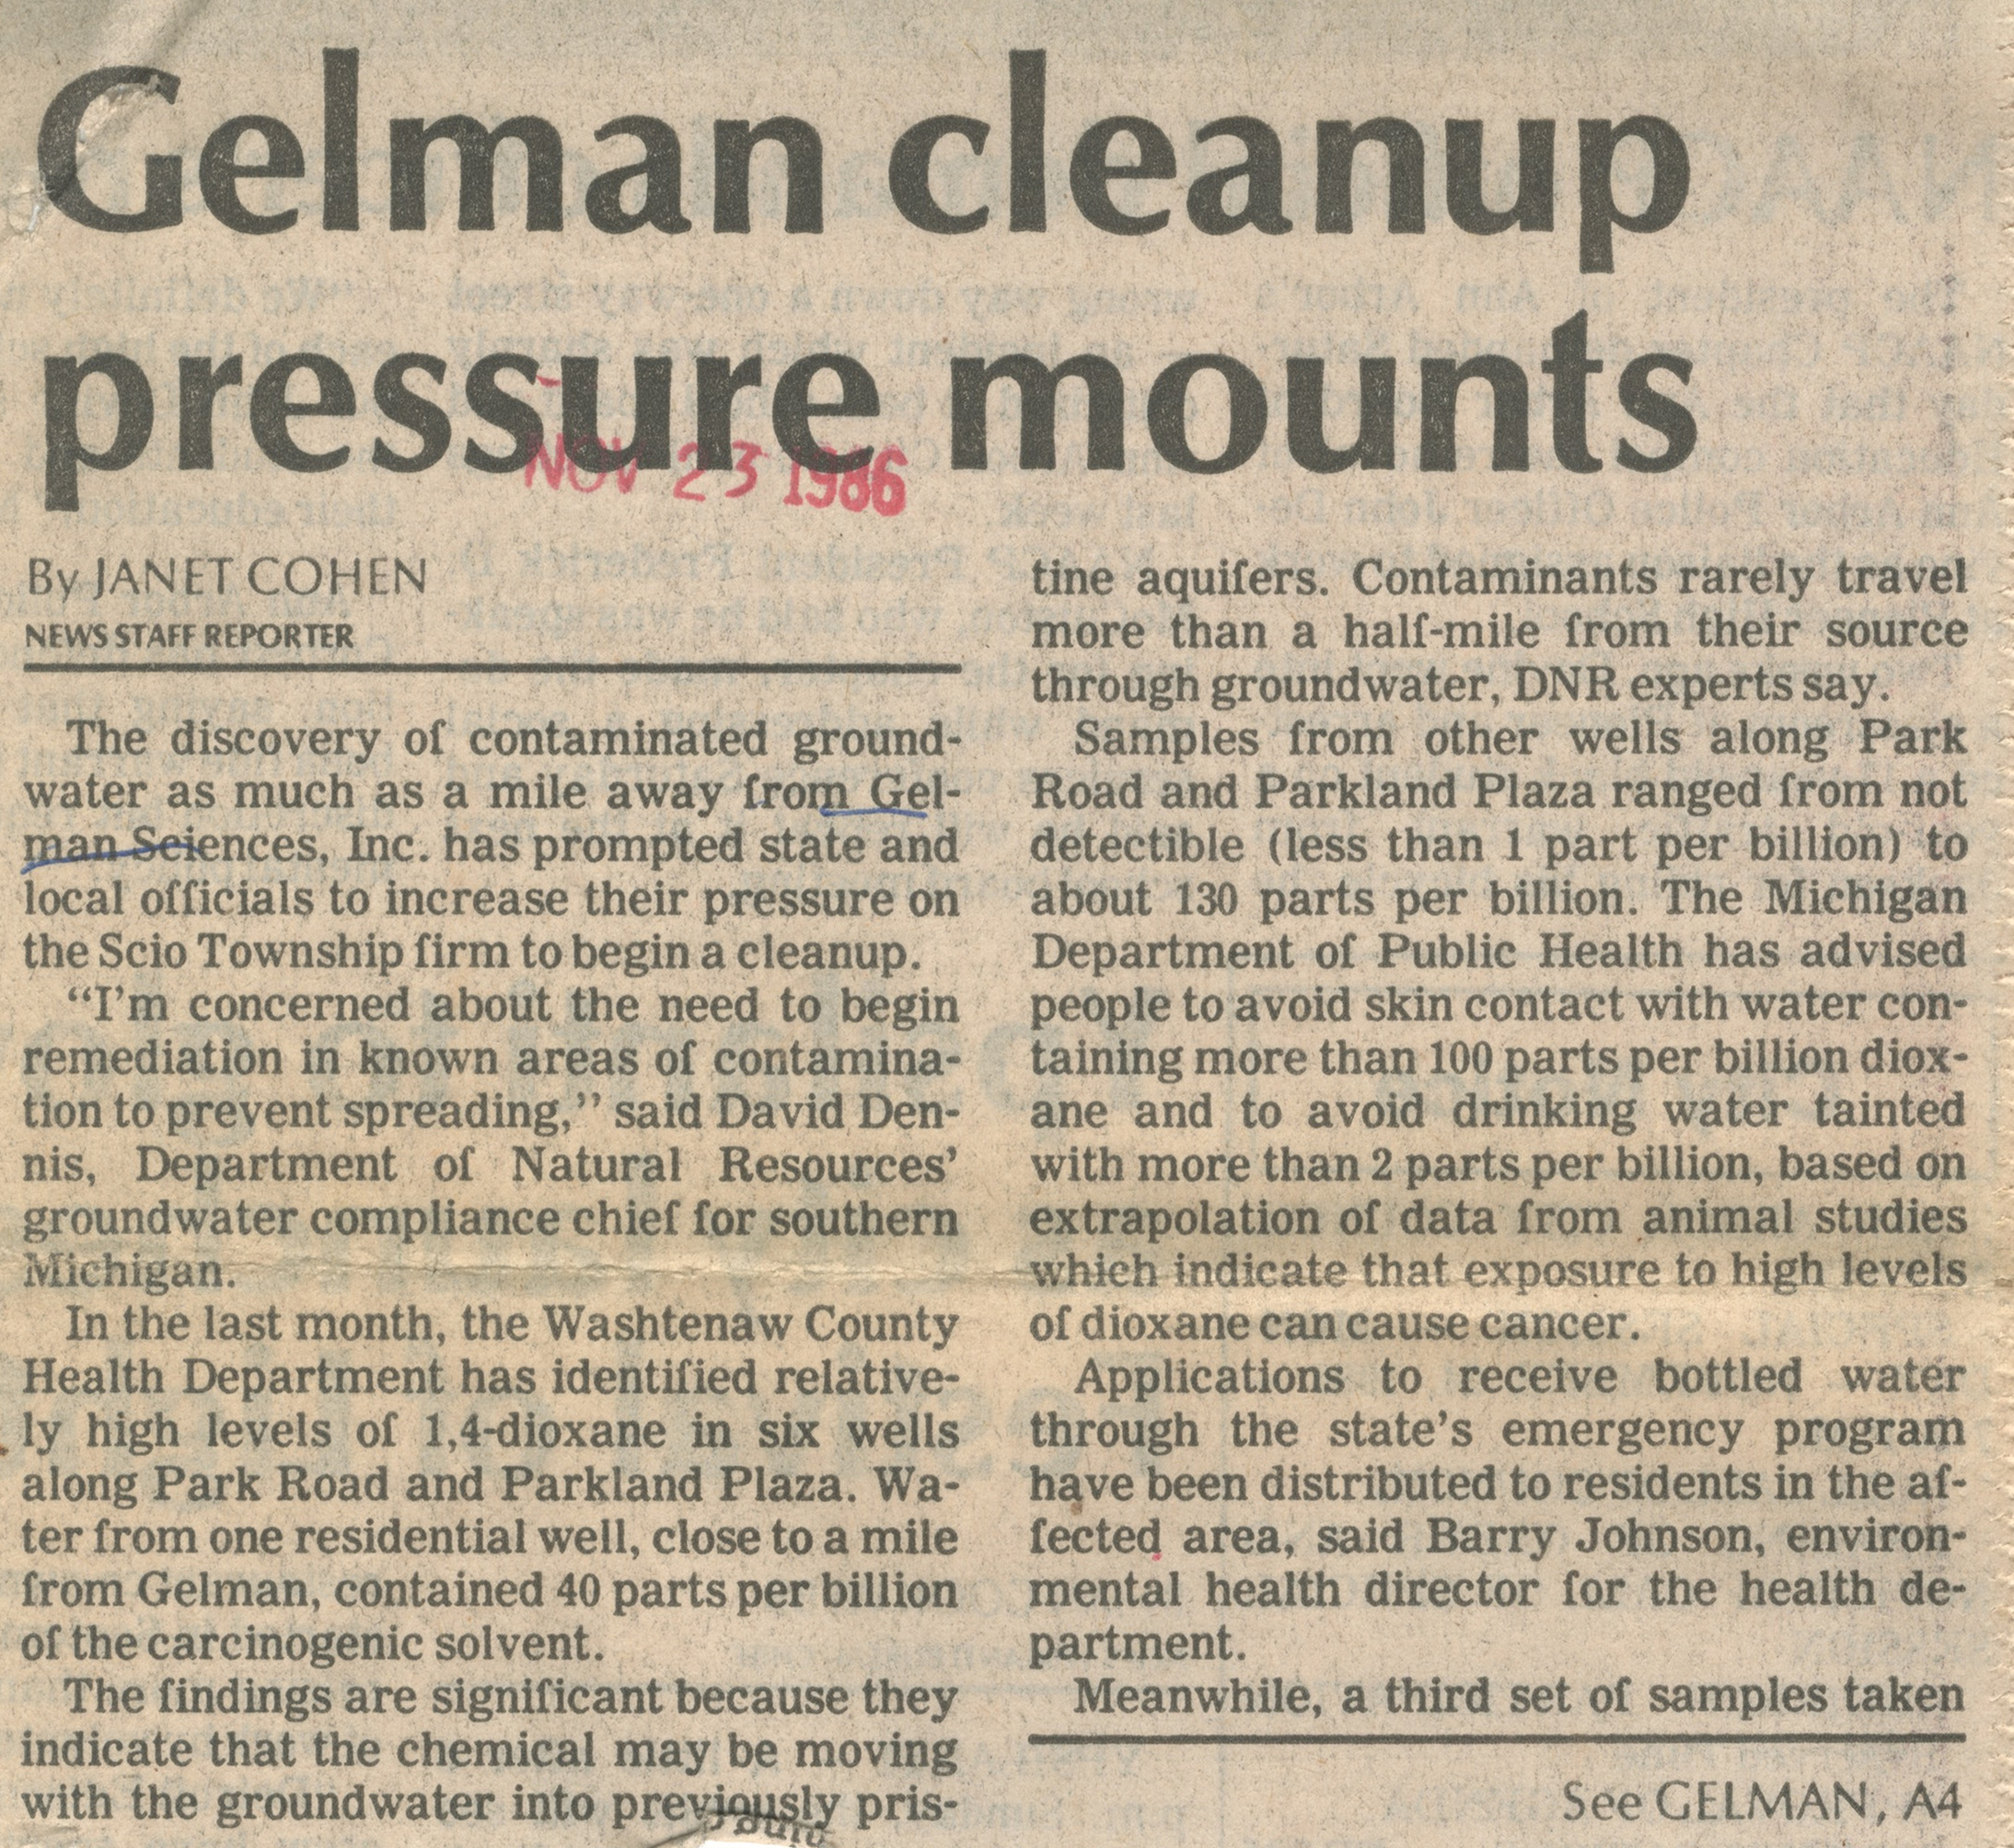 Gelman Cleanup Pressure Mounts image